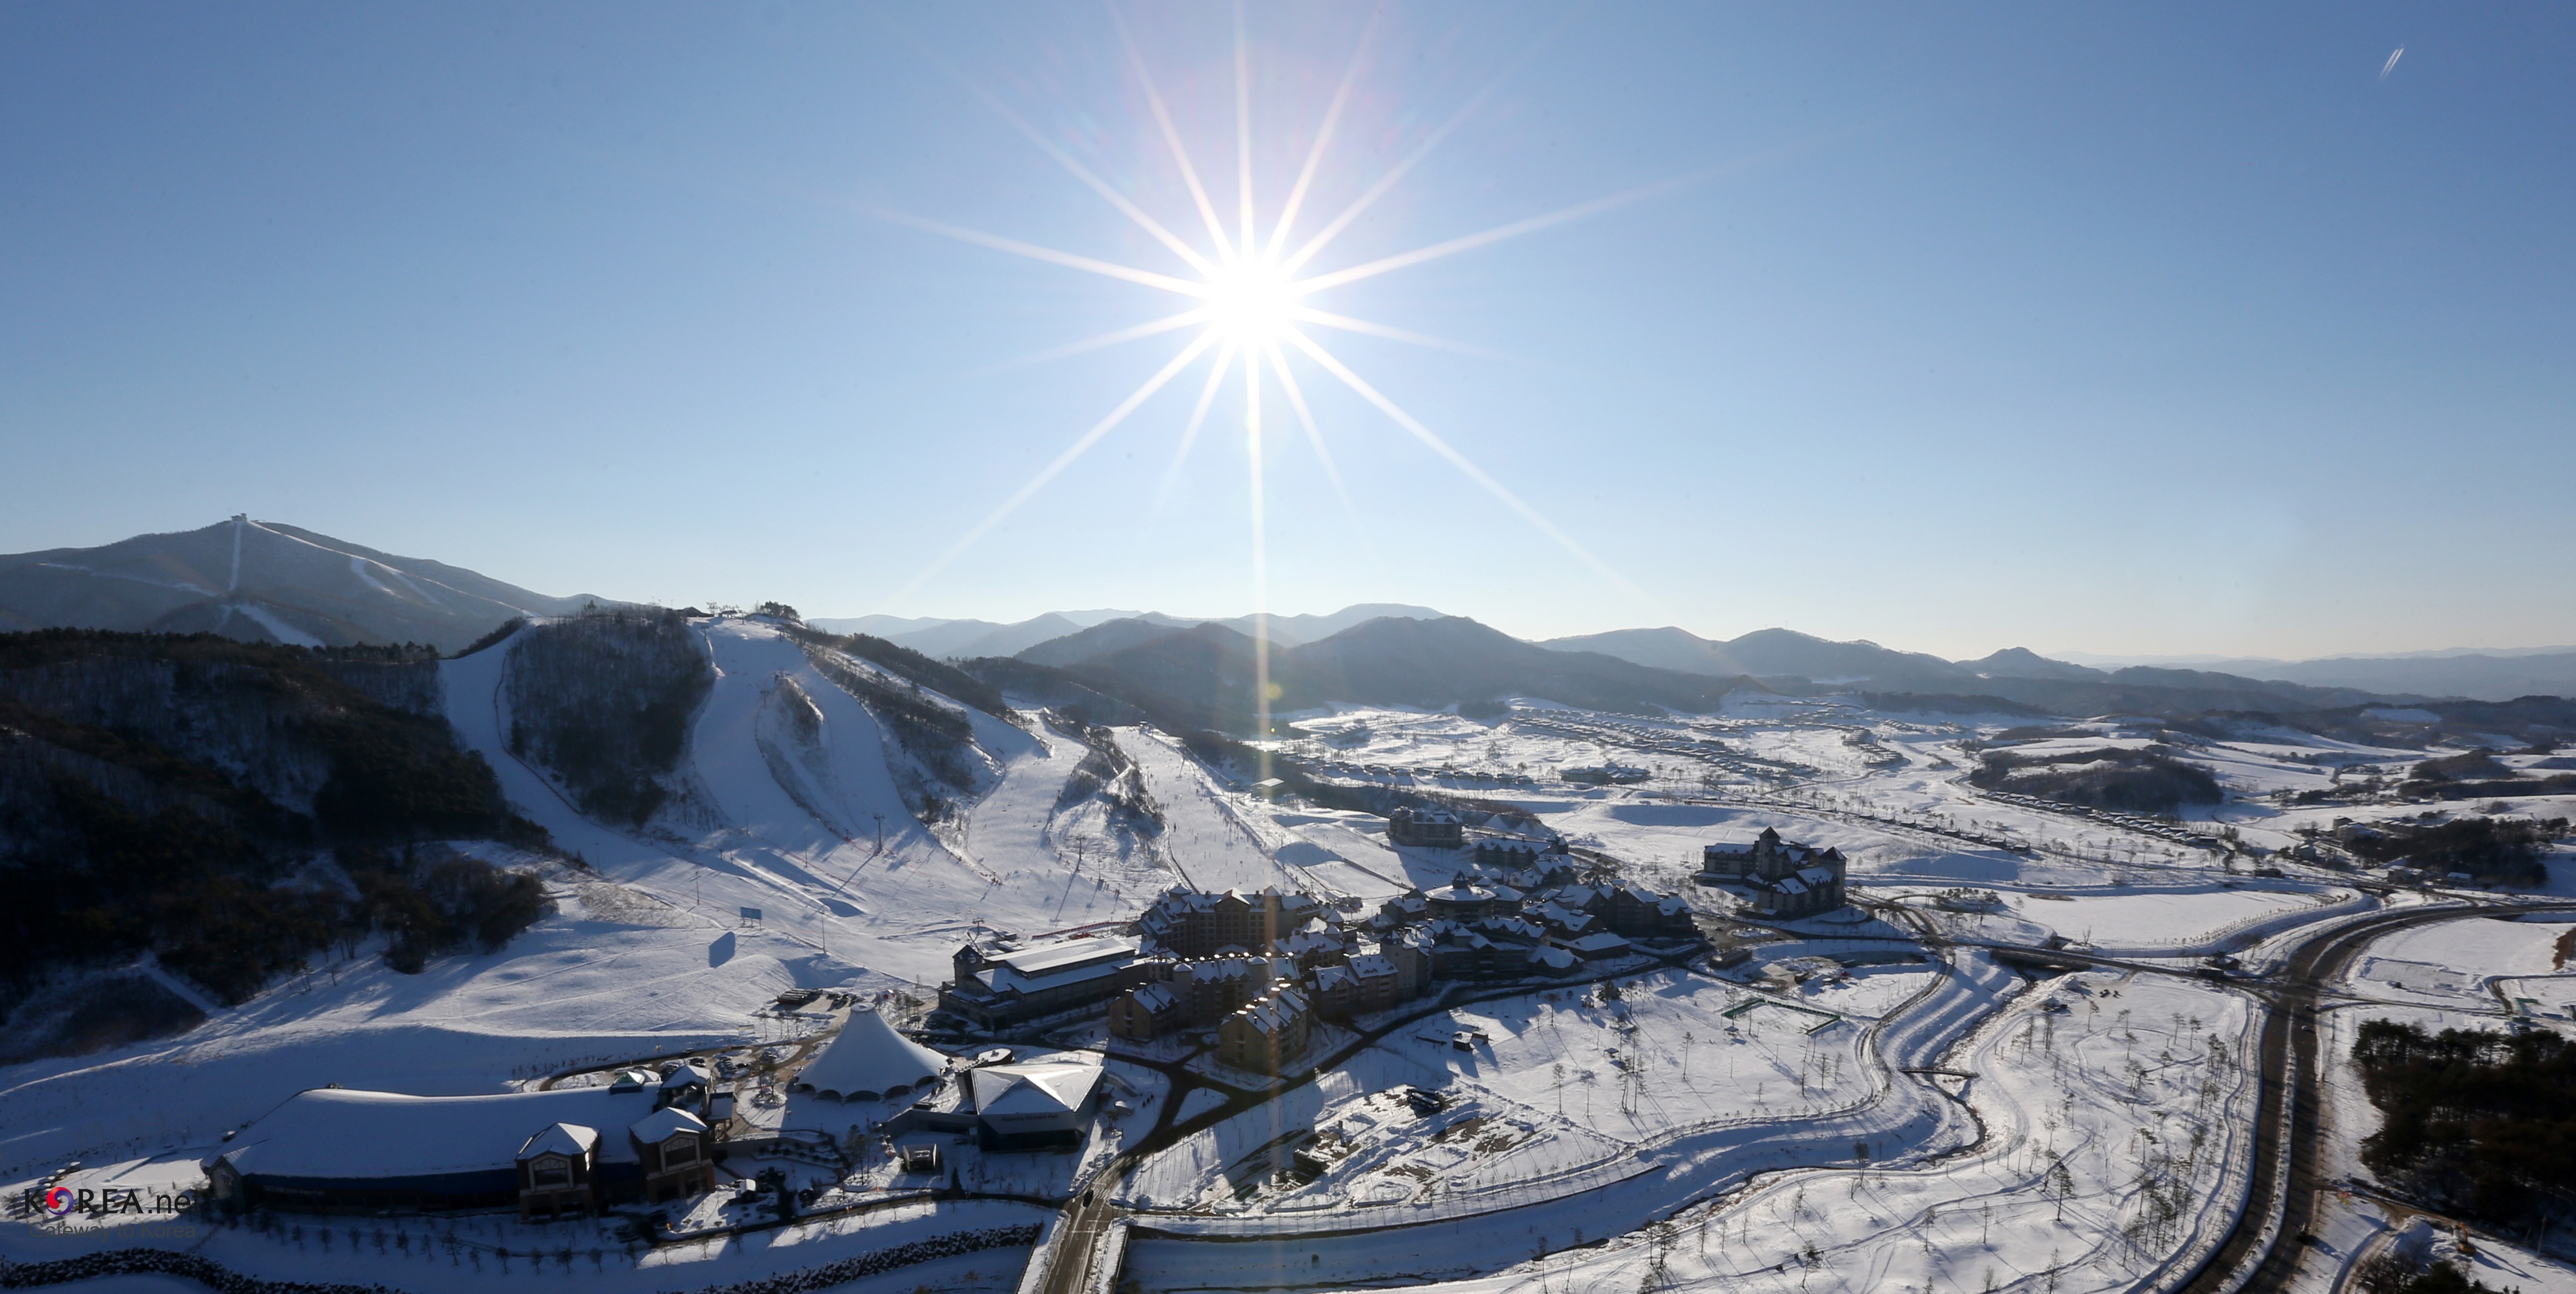 View of the sunny PyeongChang county mountain ranges